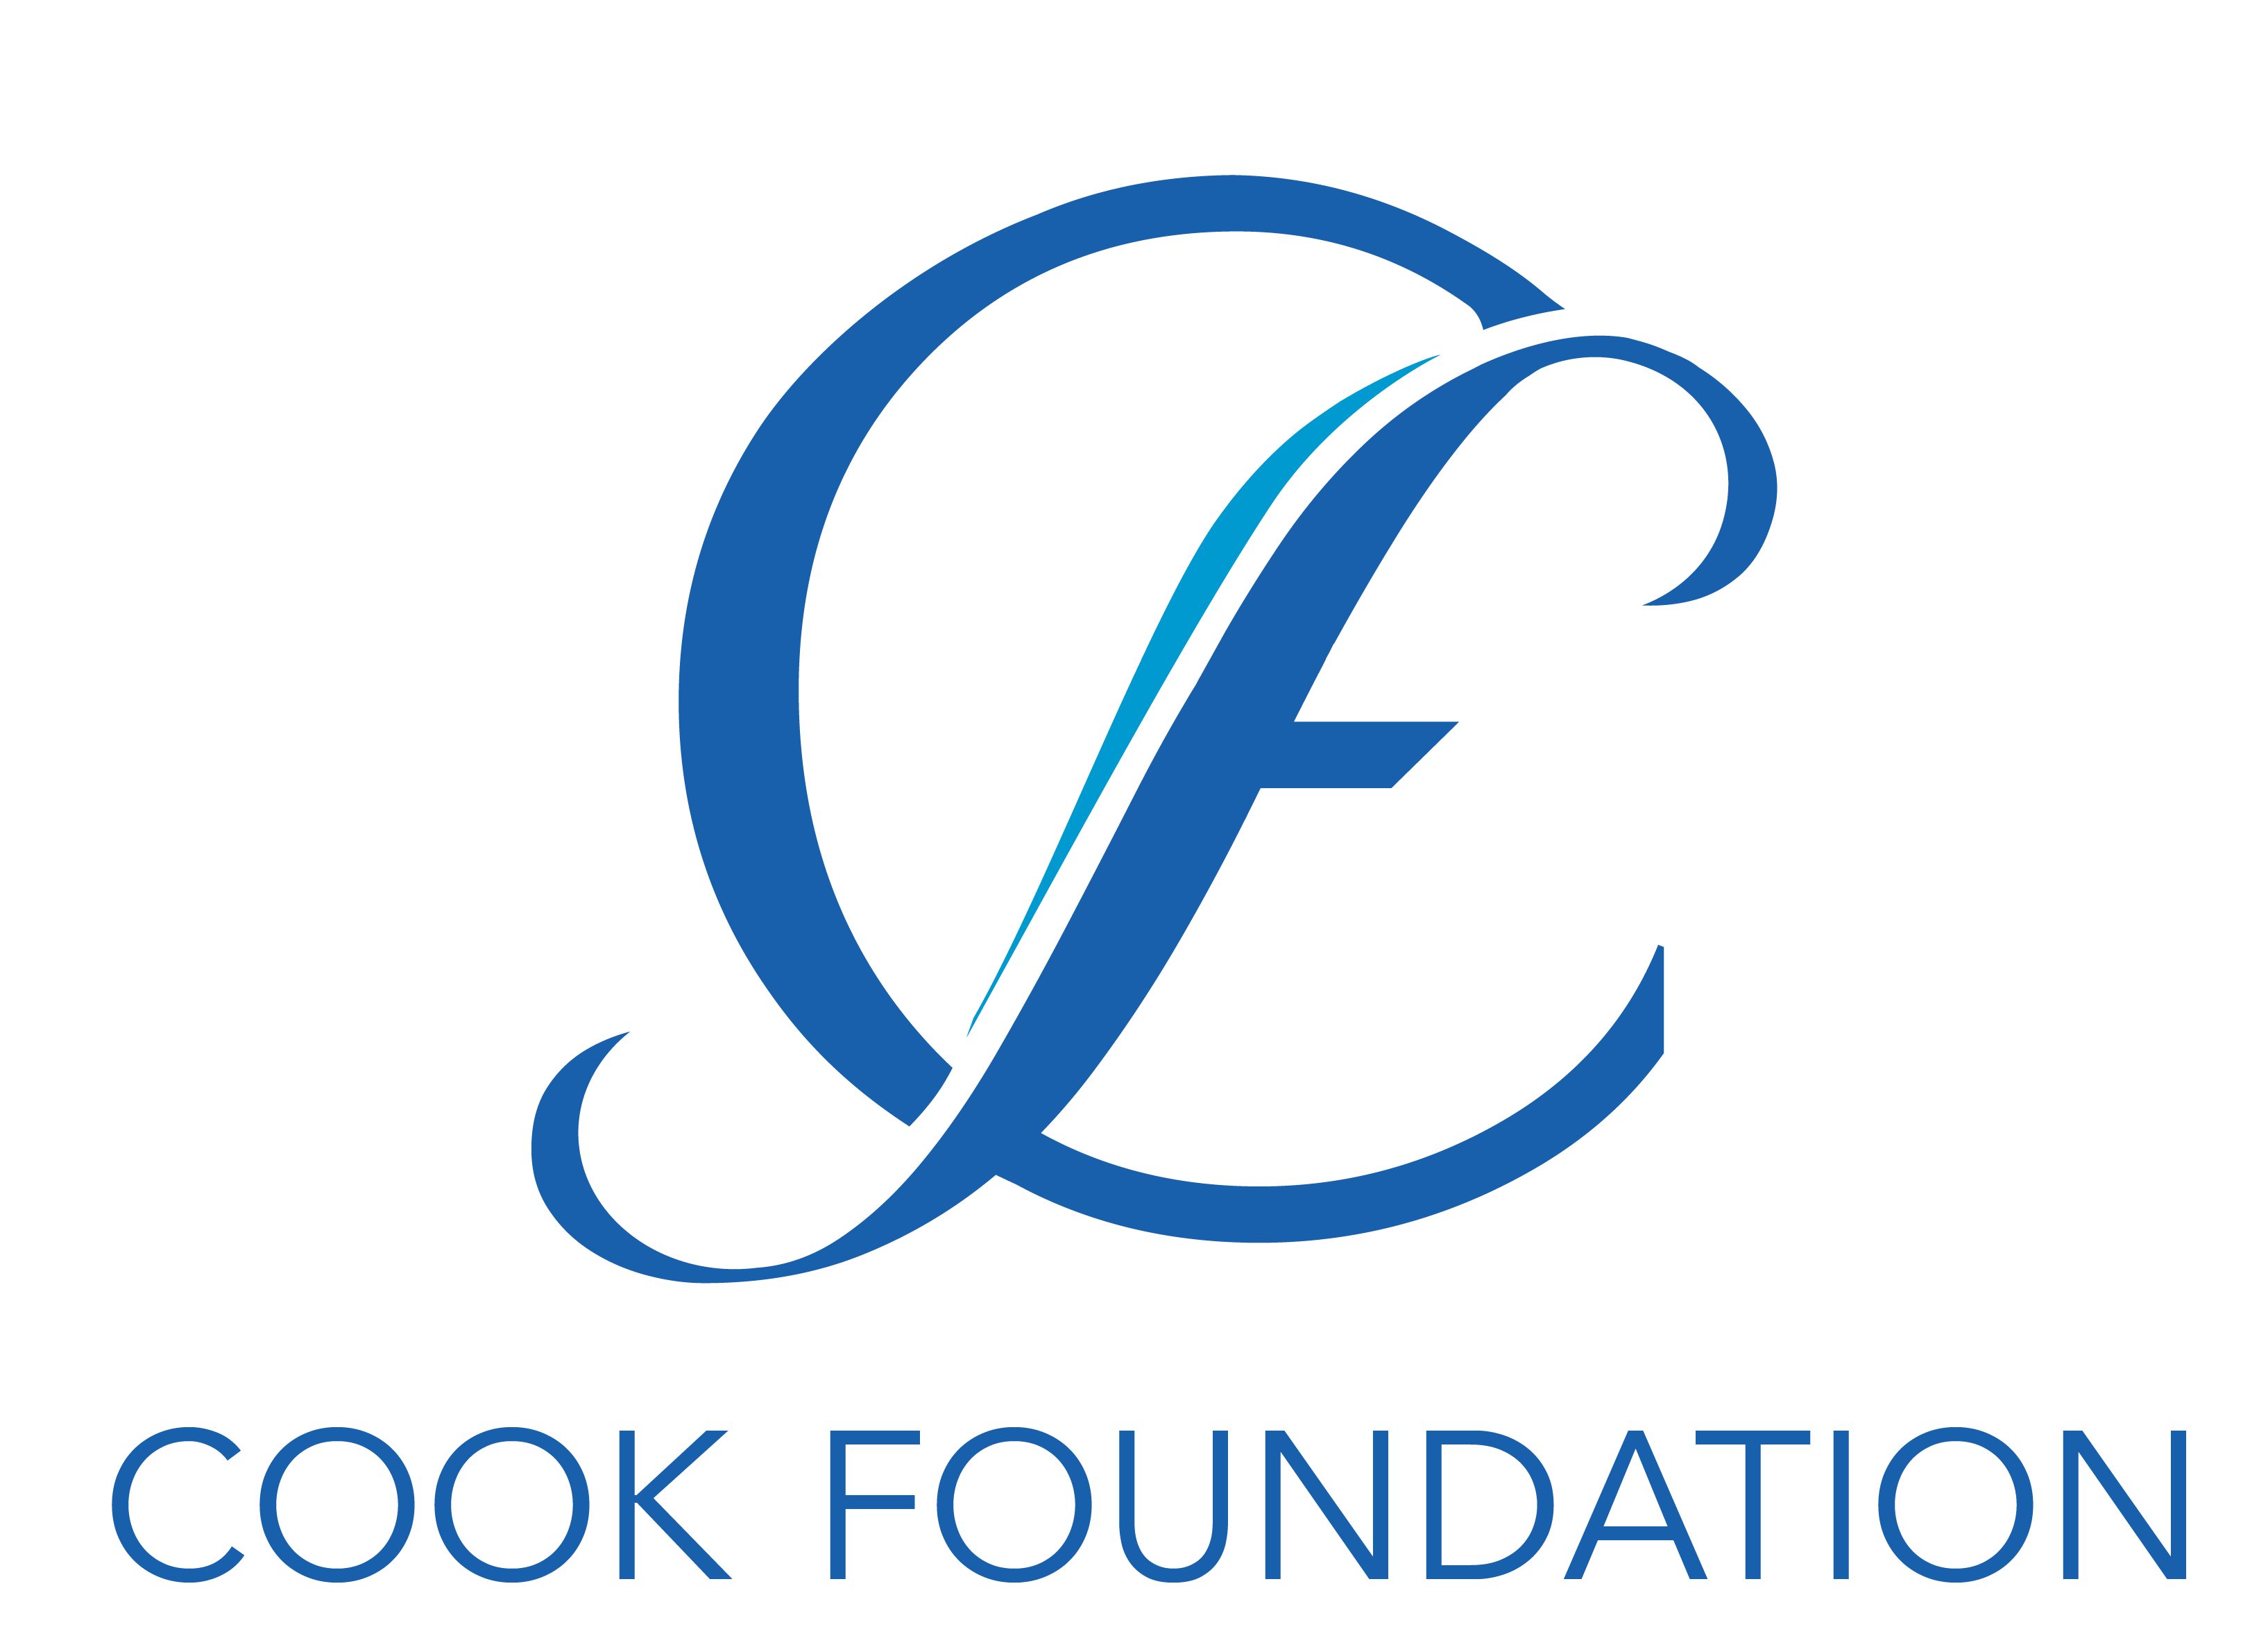 The Cook Foundation